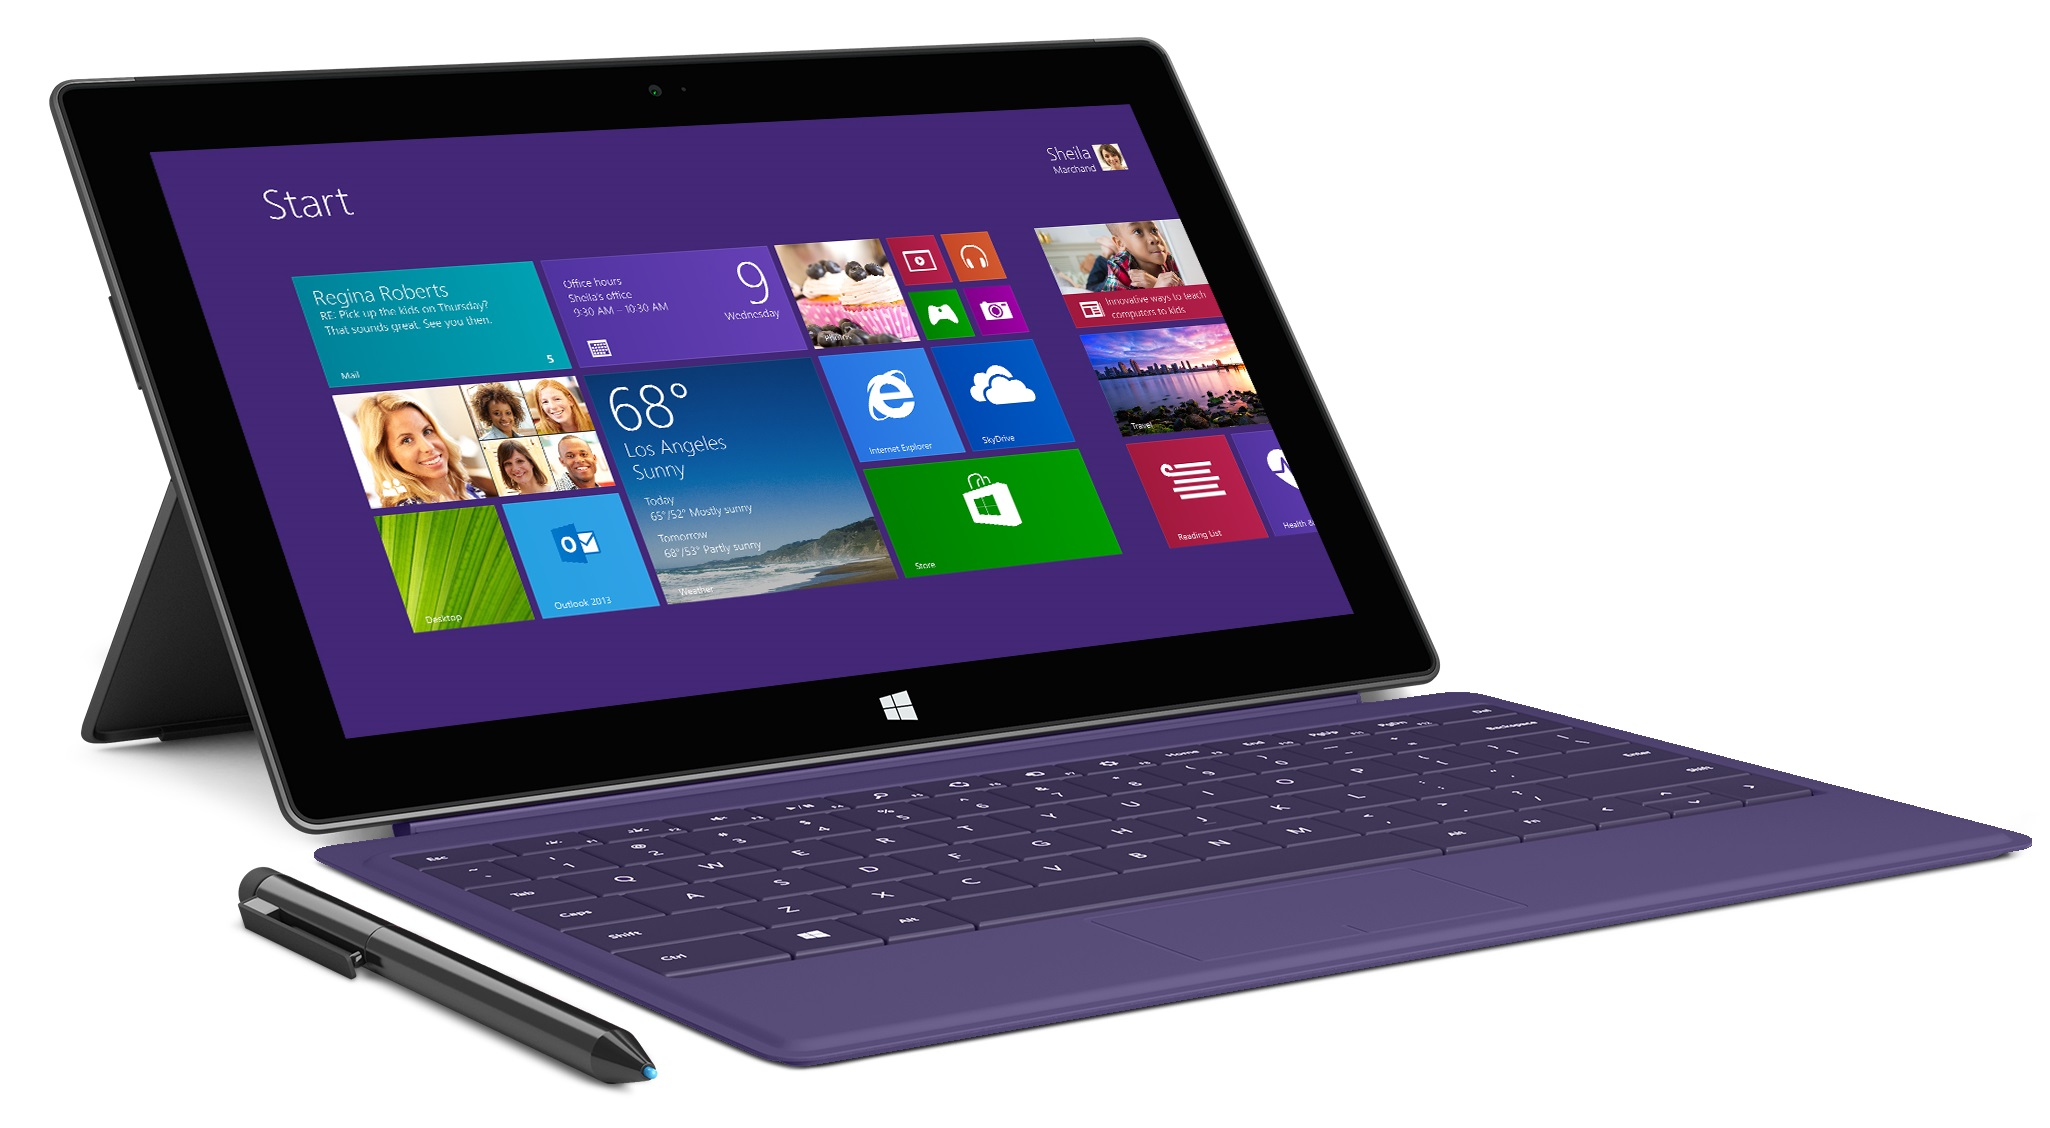 Housse de protection pour microsoft surface rt surface 2 for Housse protection